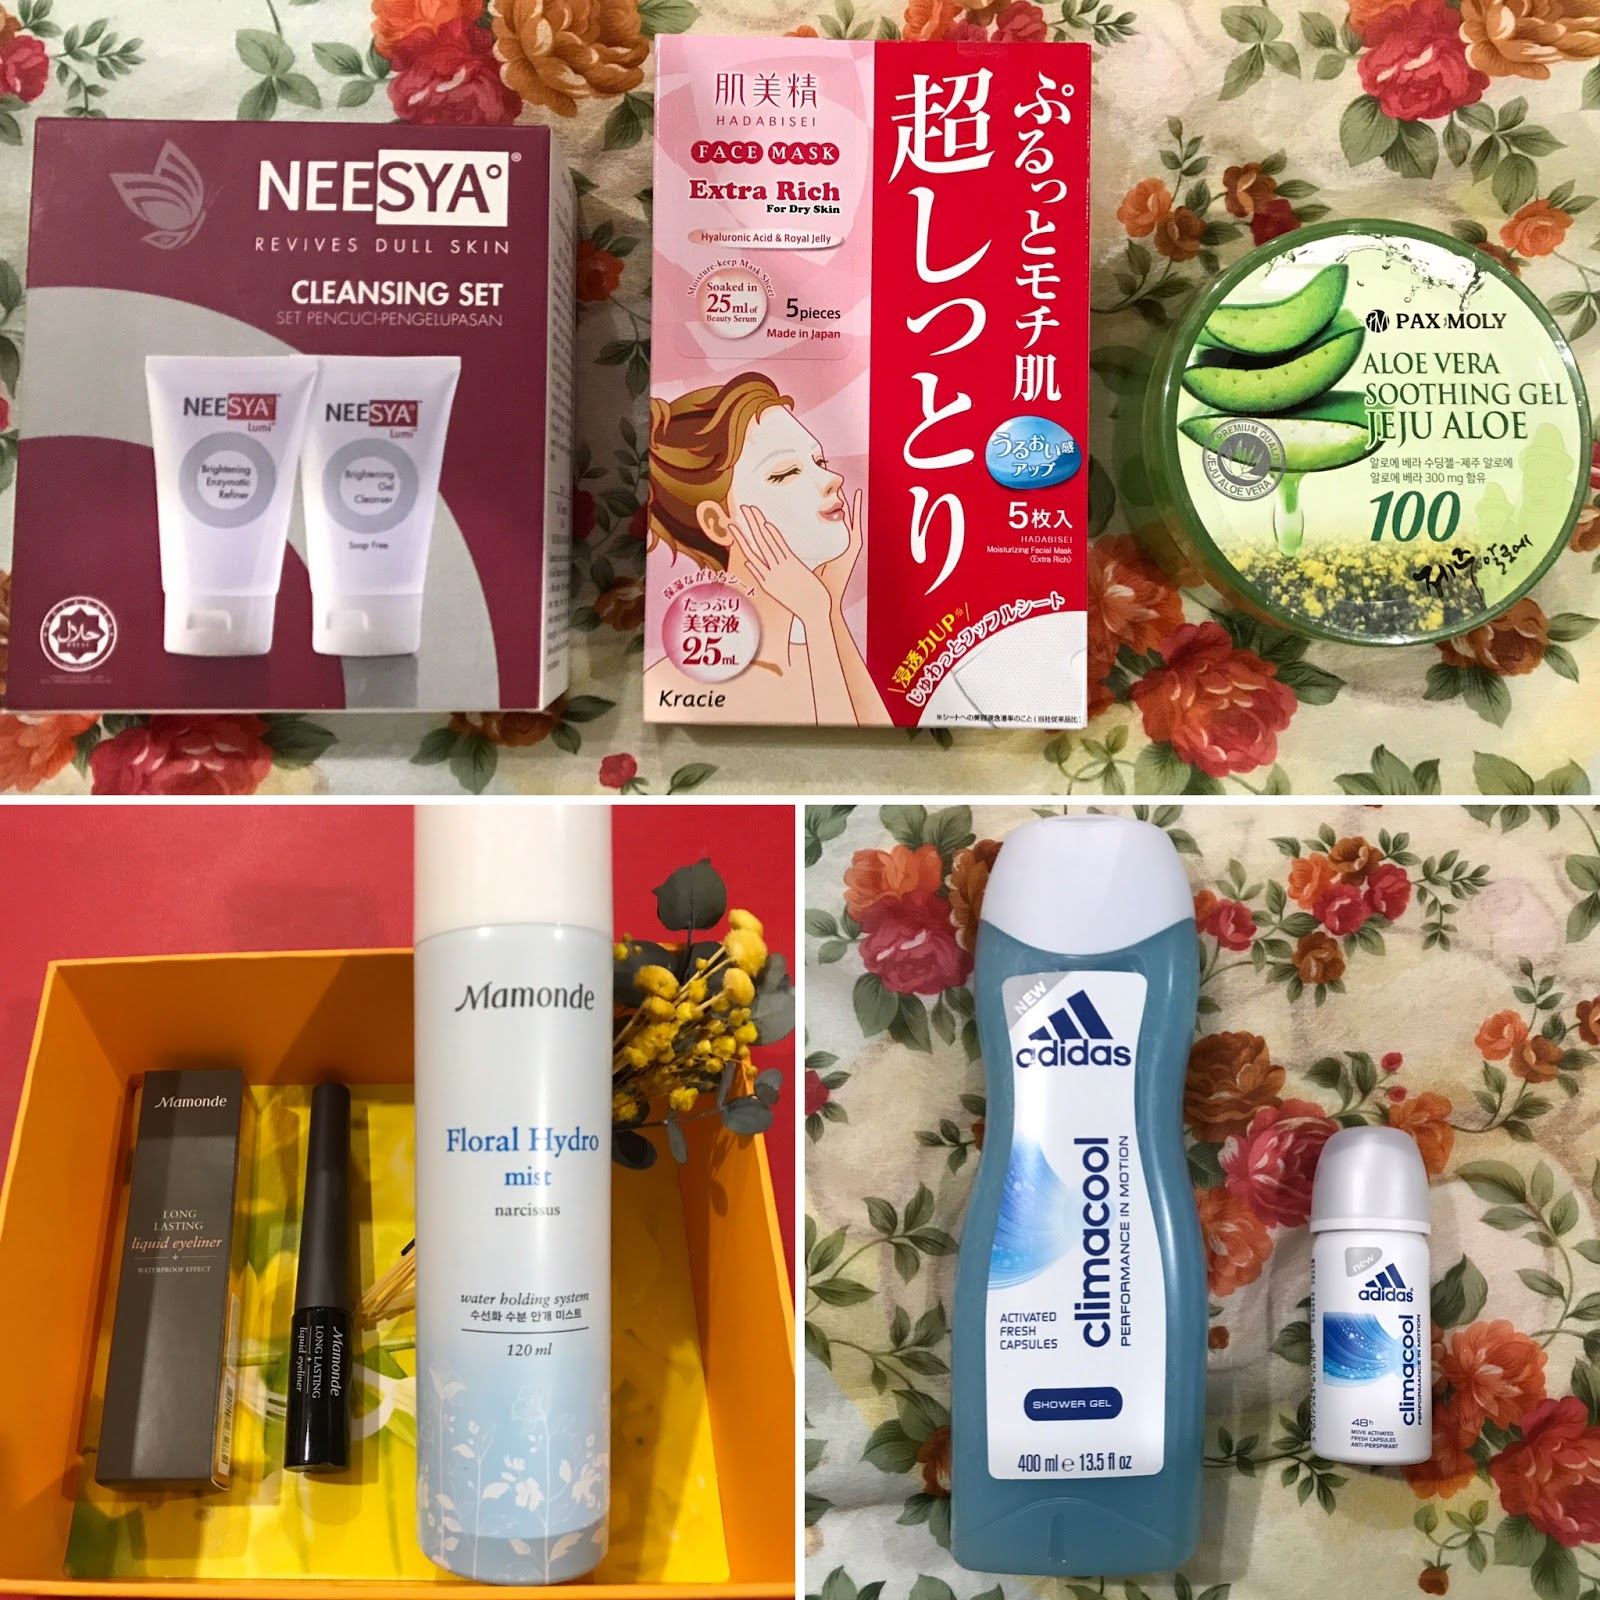 Pamper Your Skin and Body With Better Choice of Beauty Care Products from Neesya, Hadabisei, Pax Moly, Mamonde and Adidas